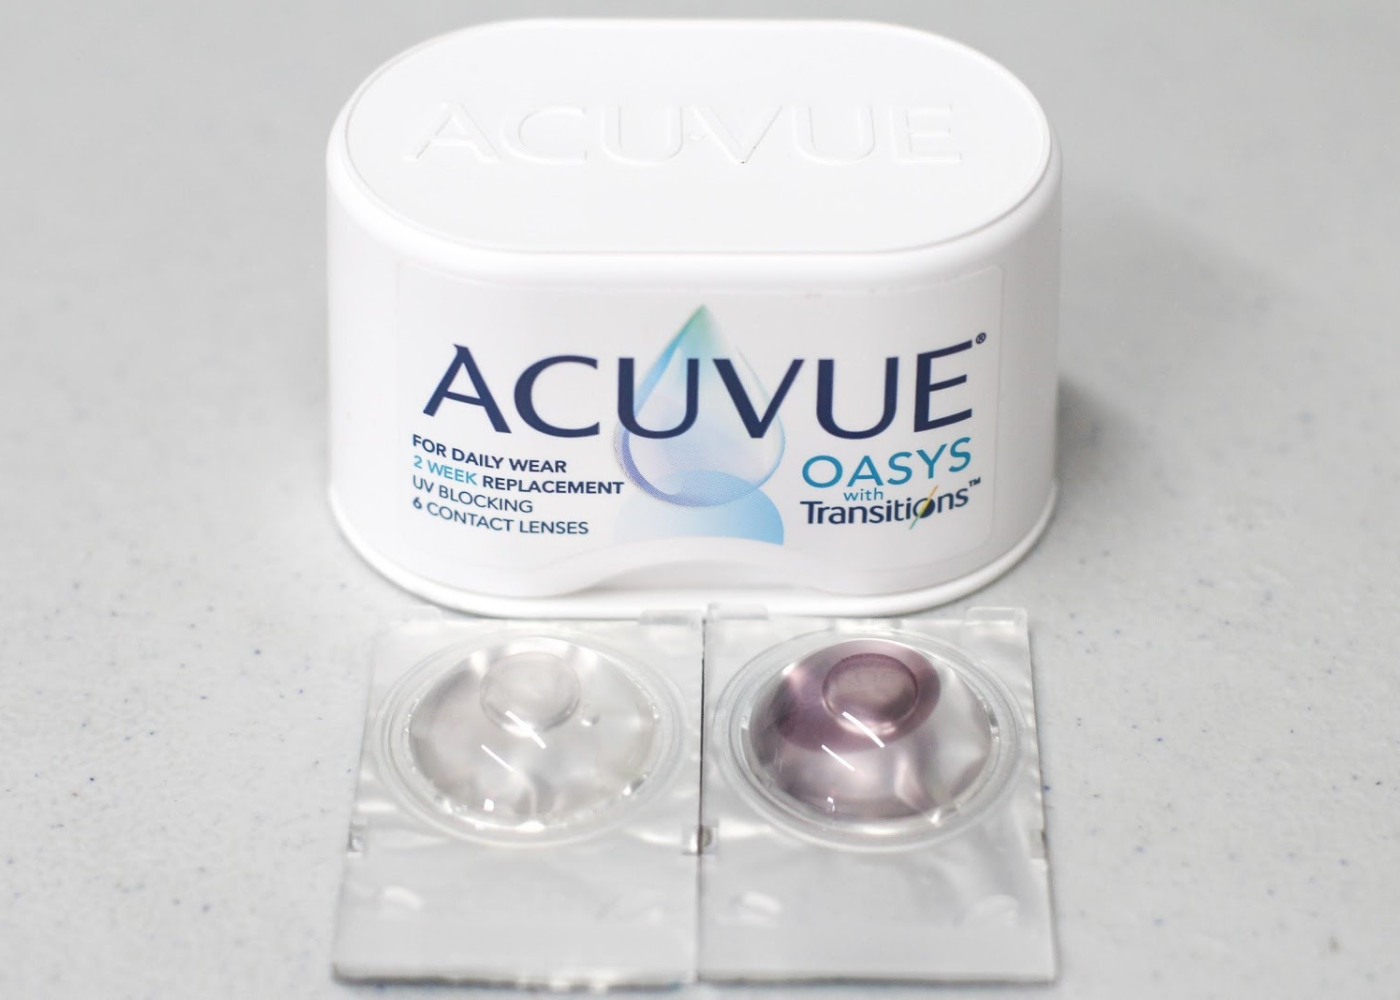 ACUVUE OASYS Contact Lenses With Transitions when it is activated (left) and before it is activated (right).